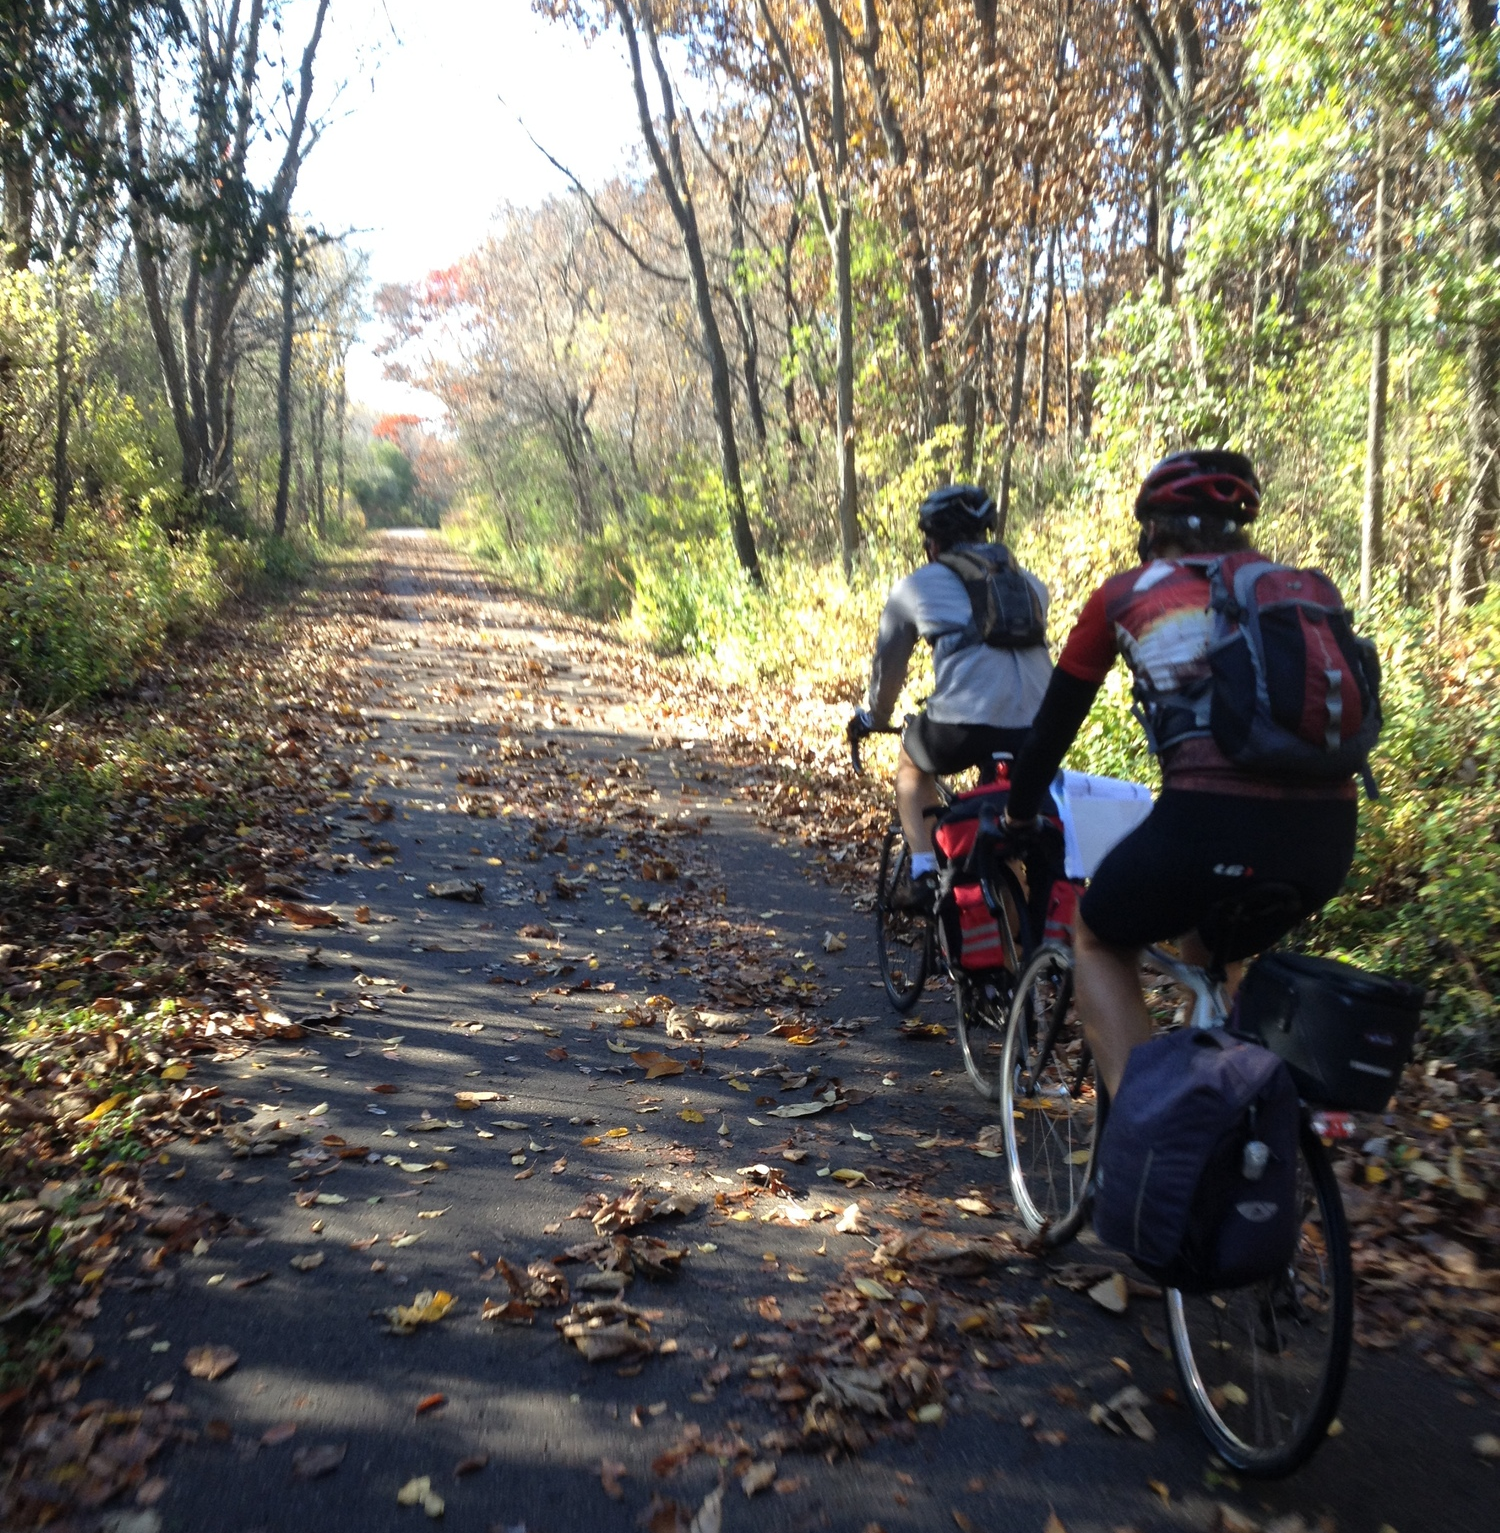 One of many bike paths in Madison. This one took us about 15 miles out of town on day 1 to start our adventure.